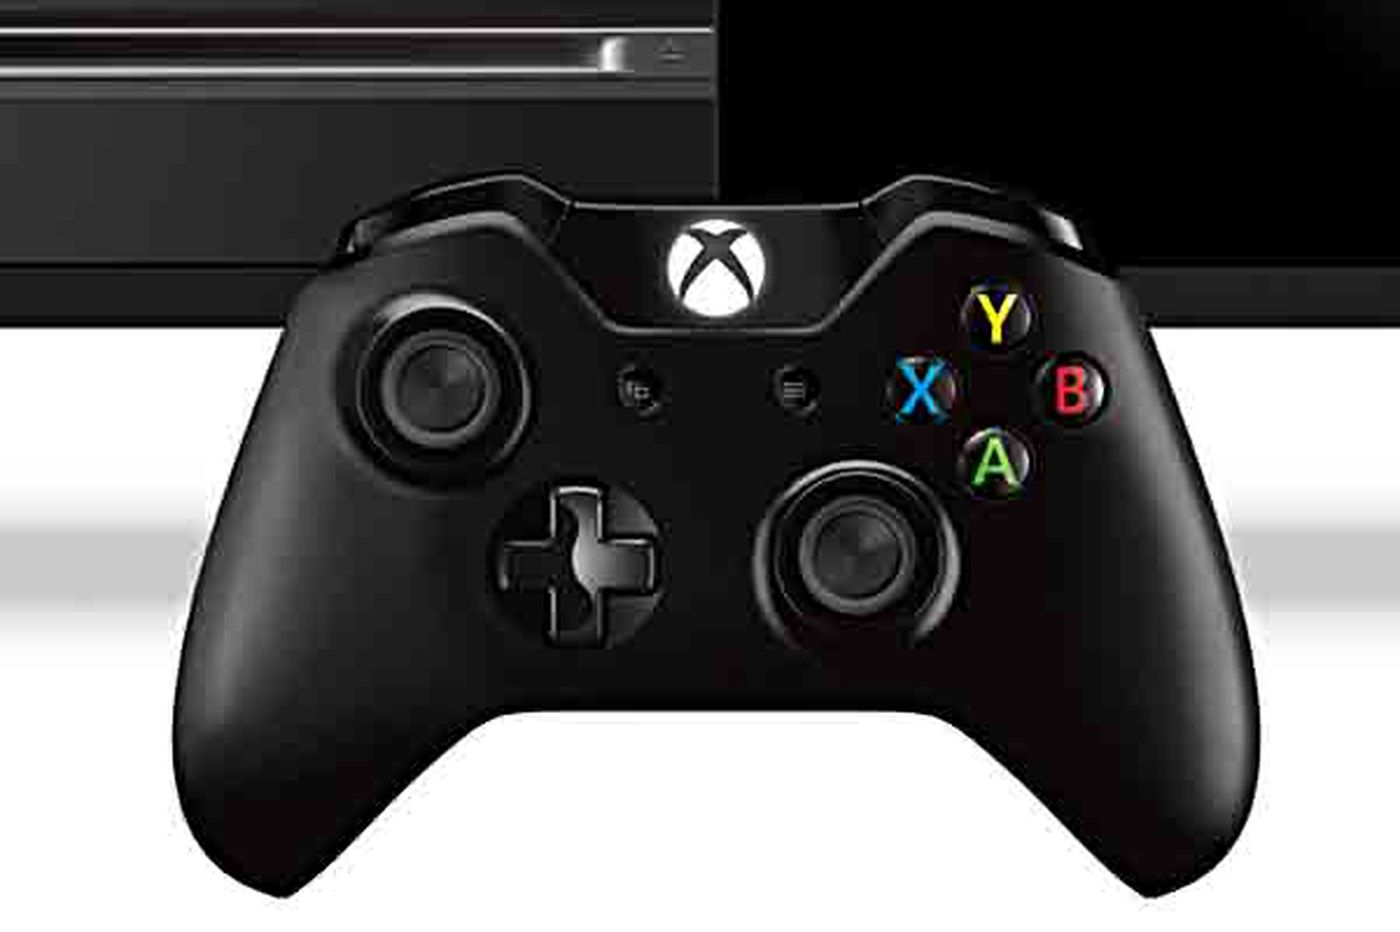 Jeff Gelles: Microsoft Xbox One aims to reduce remote-control confusion